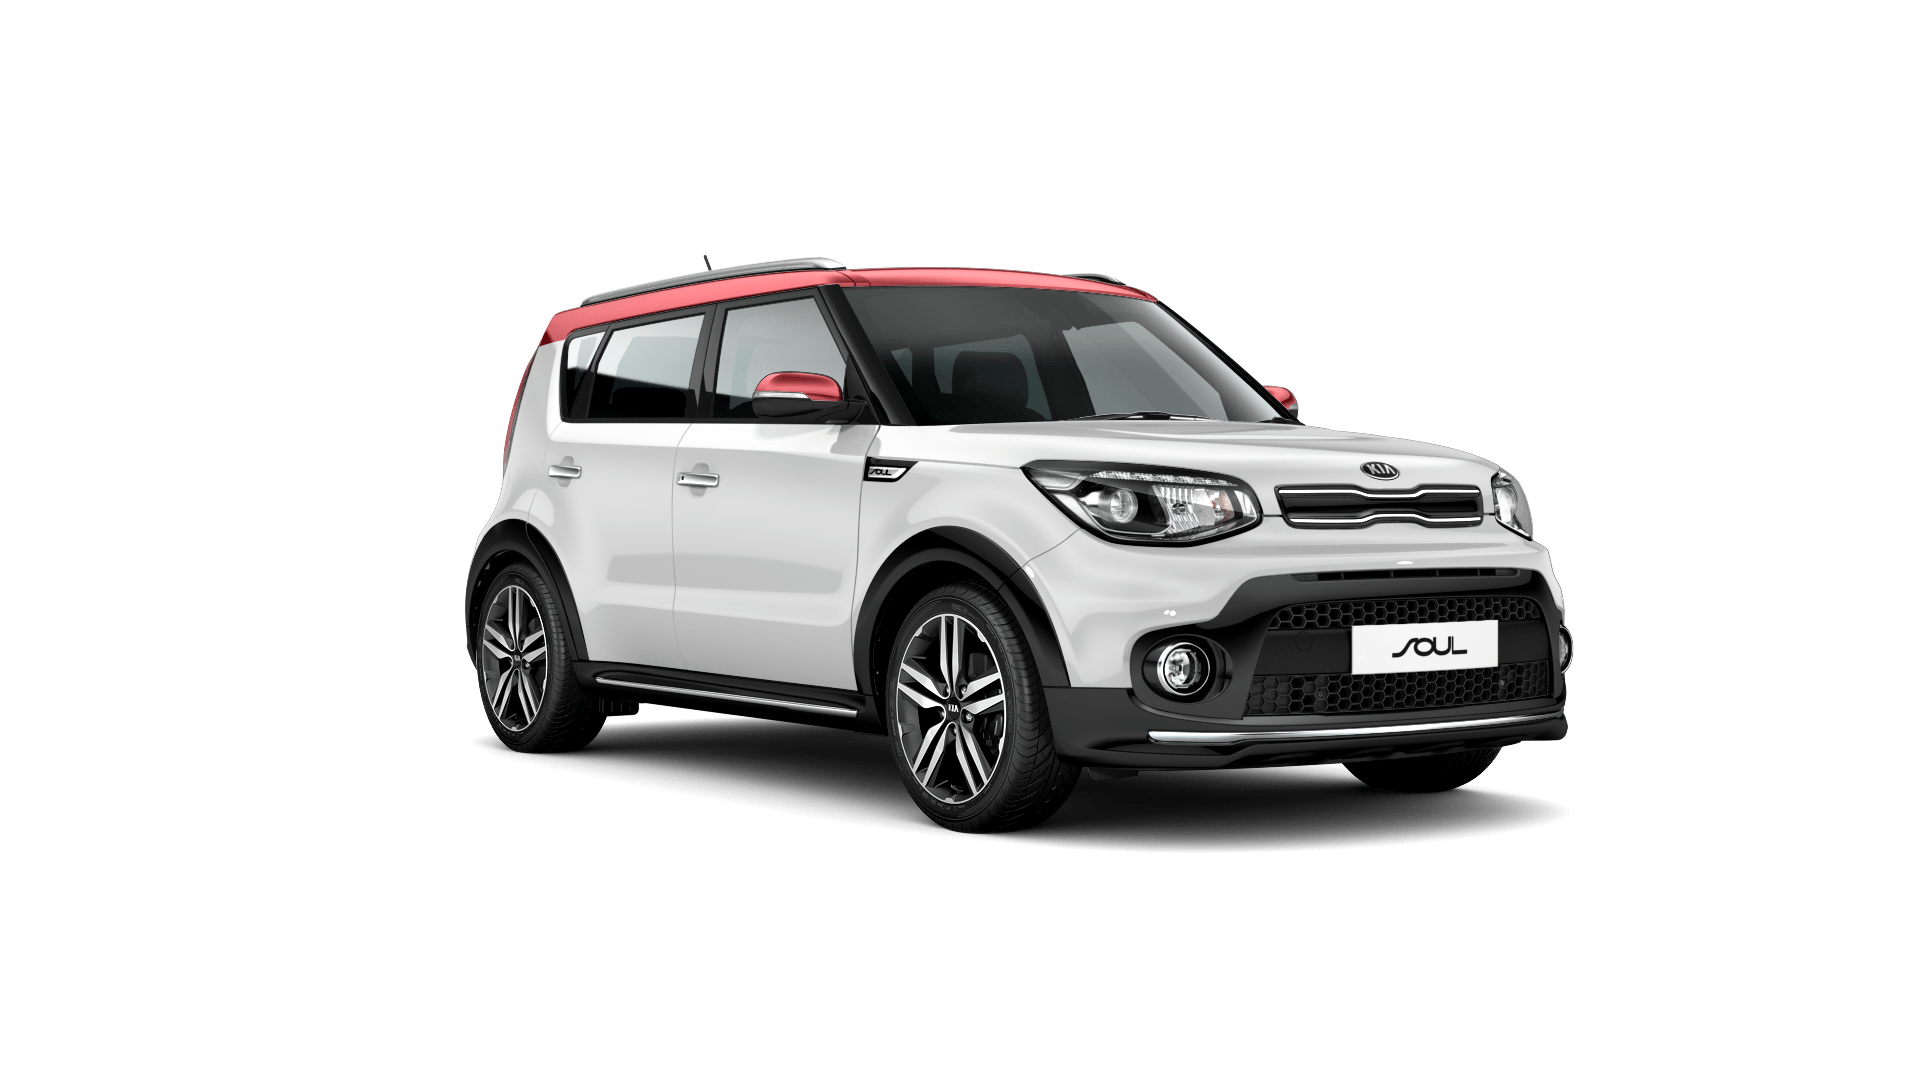 Kia Soul: Power outlet (if equipped)